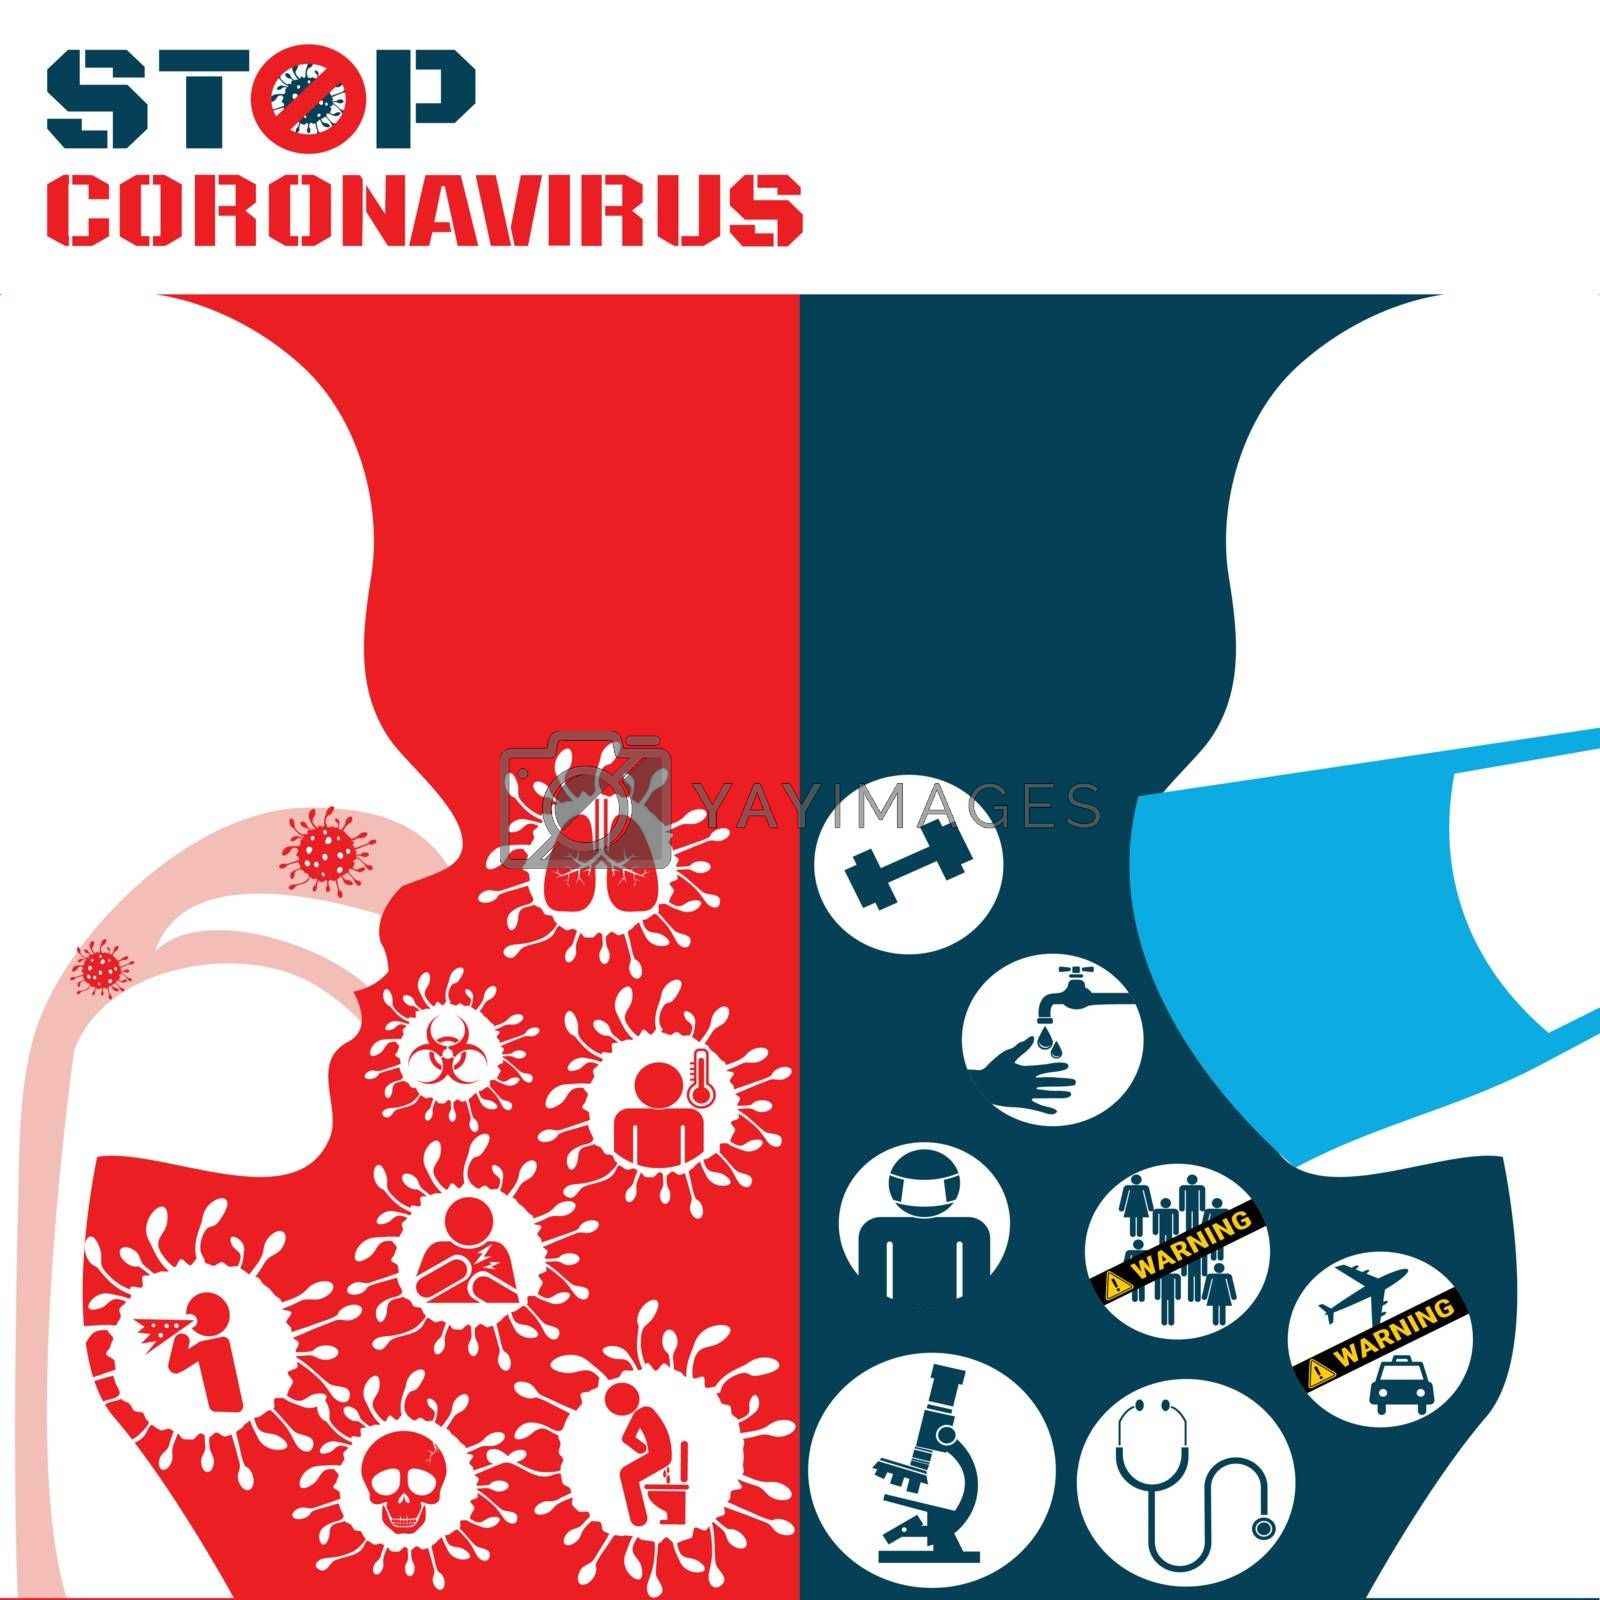 Icon of Covid 19 virus Coronavirus and respiratory pathogens of human